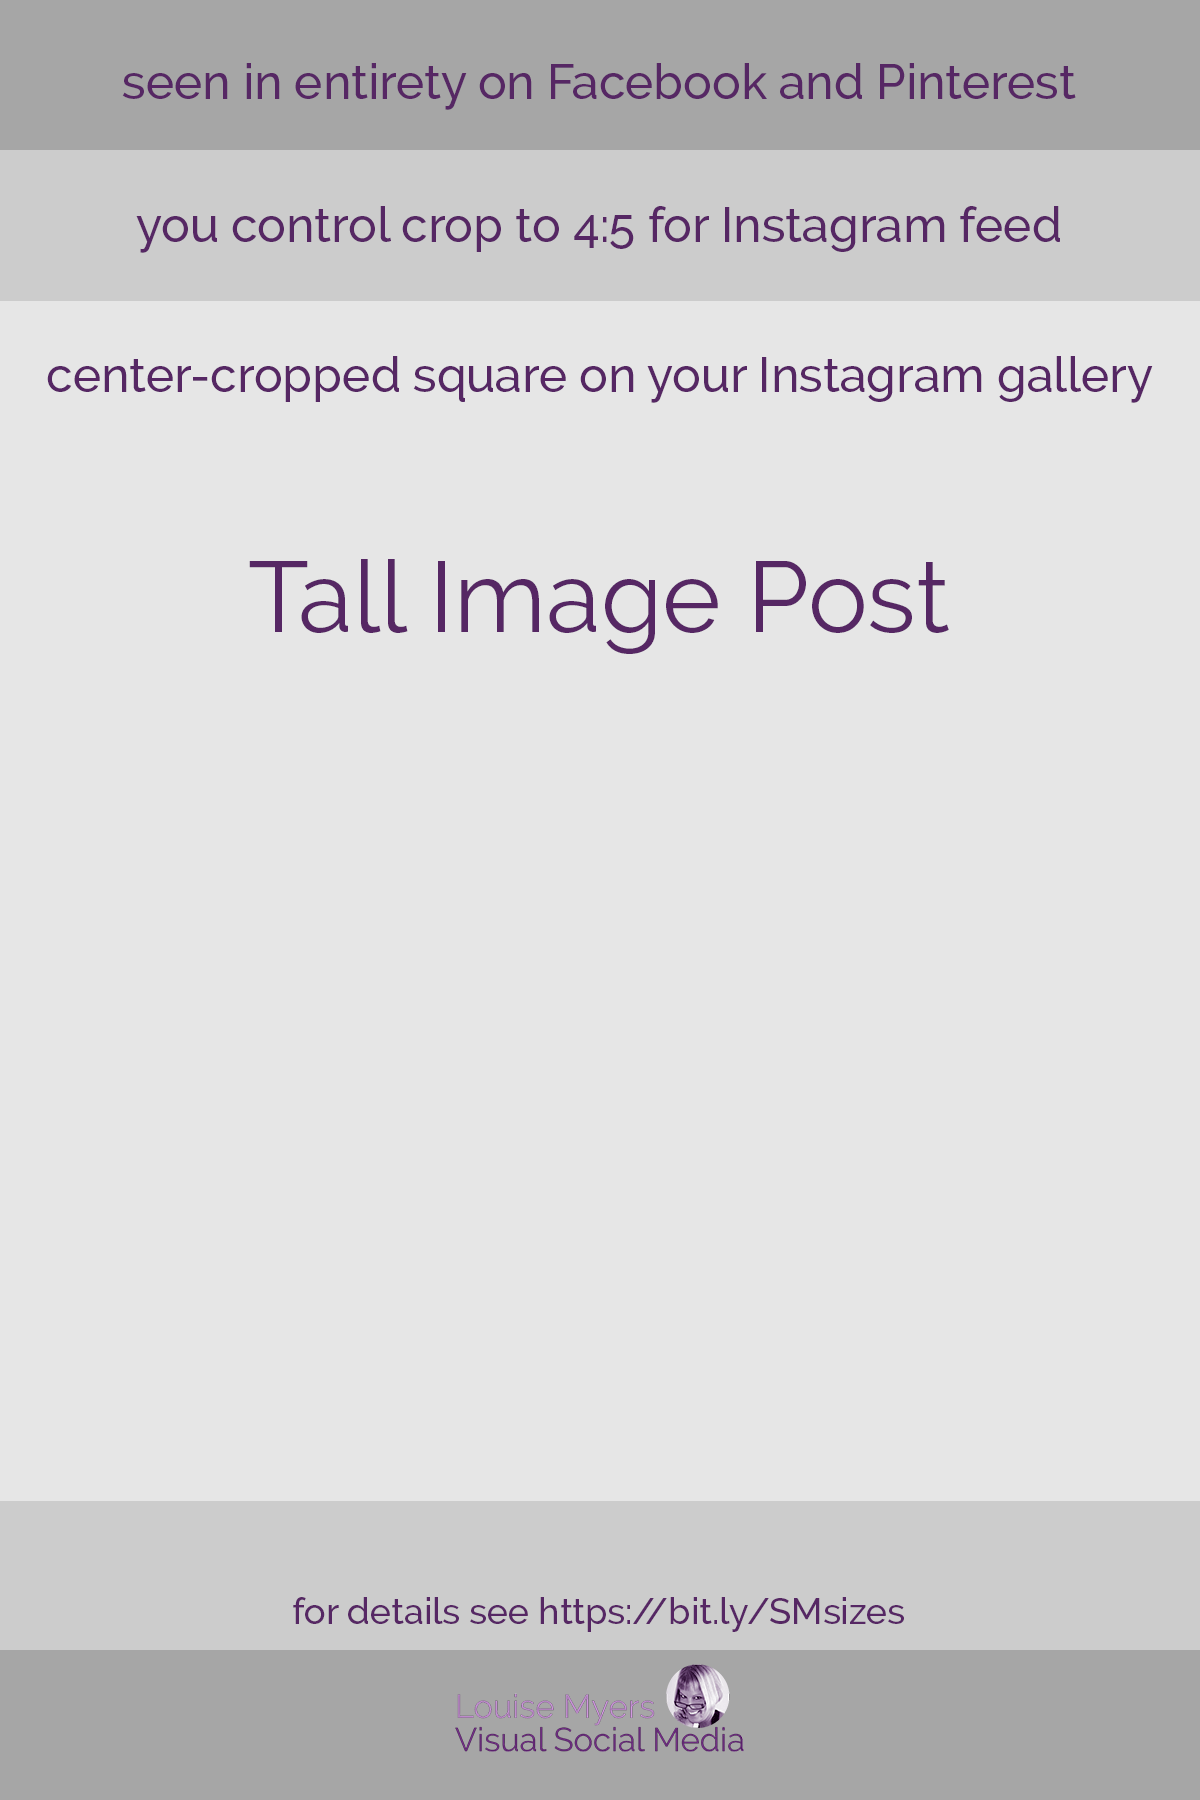 template for tall social media image posts.